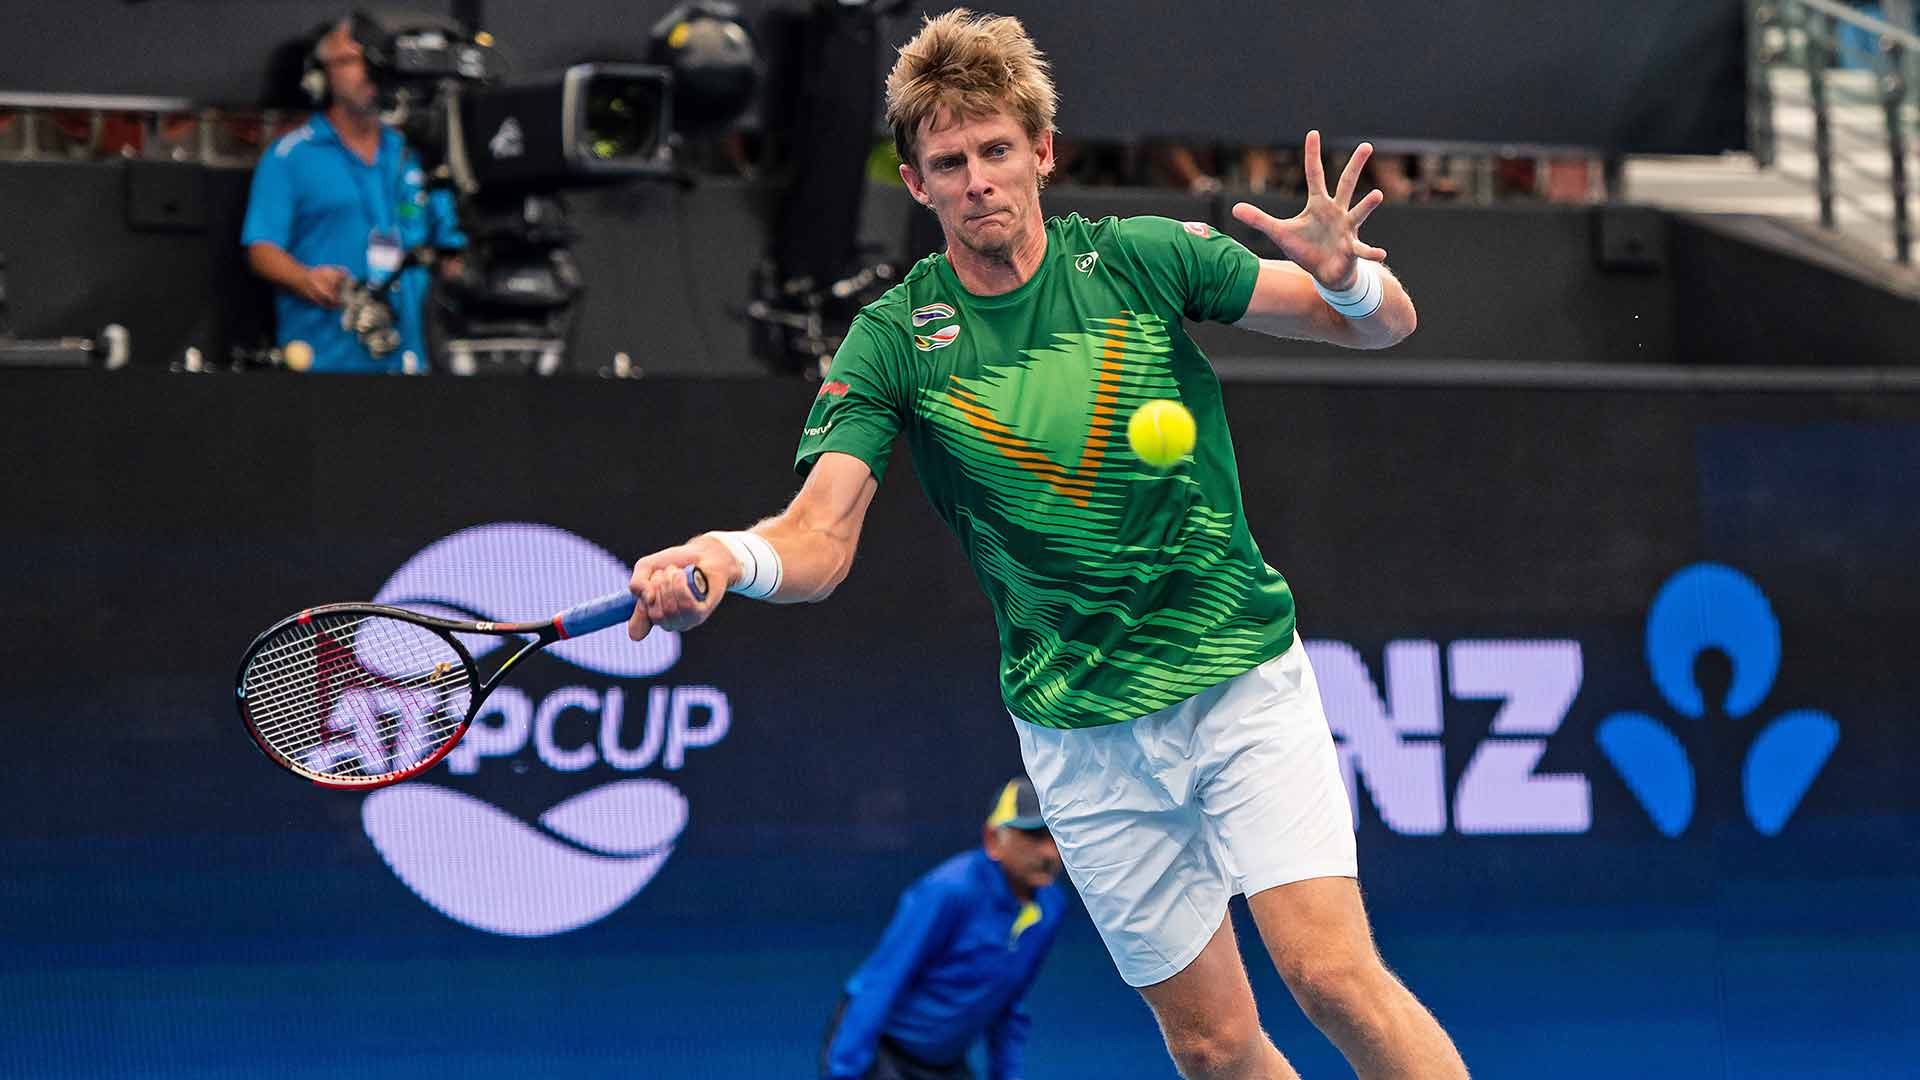 Kevin Anderson earns his first win of the 2020 season on Monday at the ATP Cup in Brisbane.